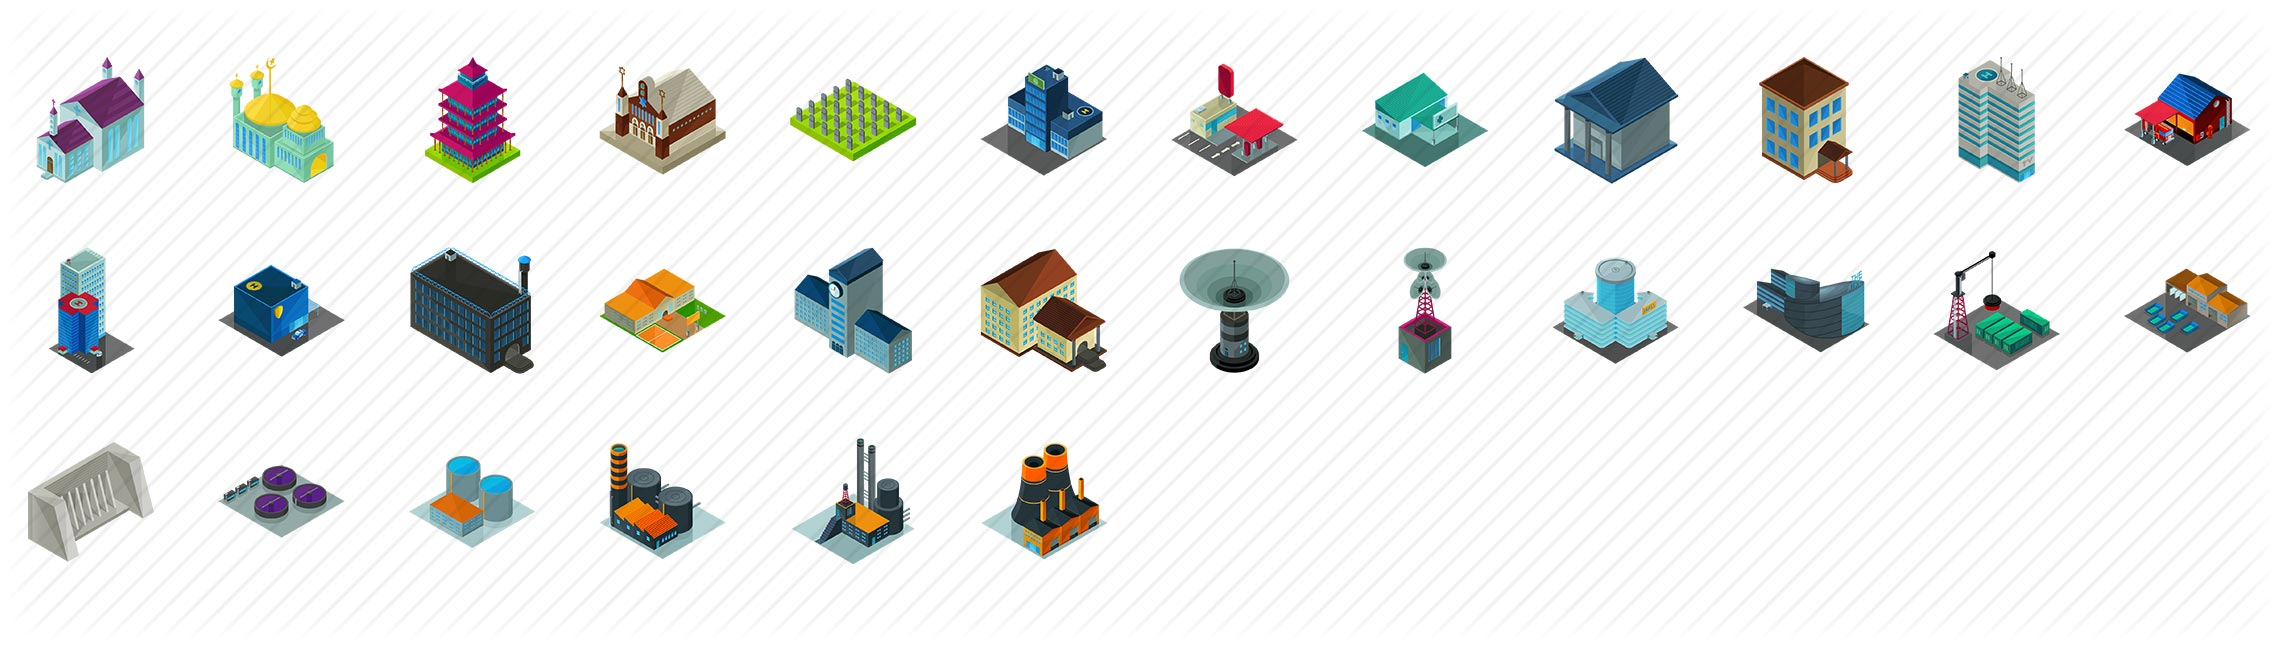 Essential Buildings Isometric Icons